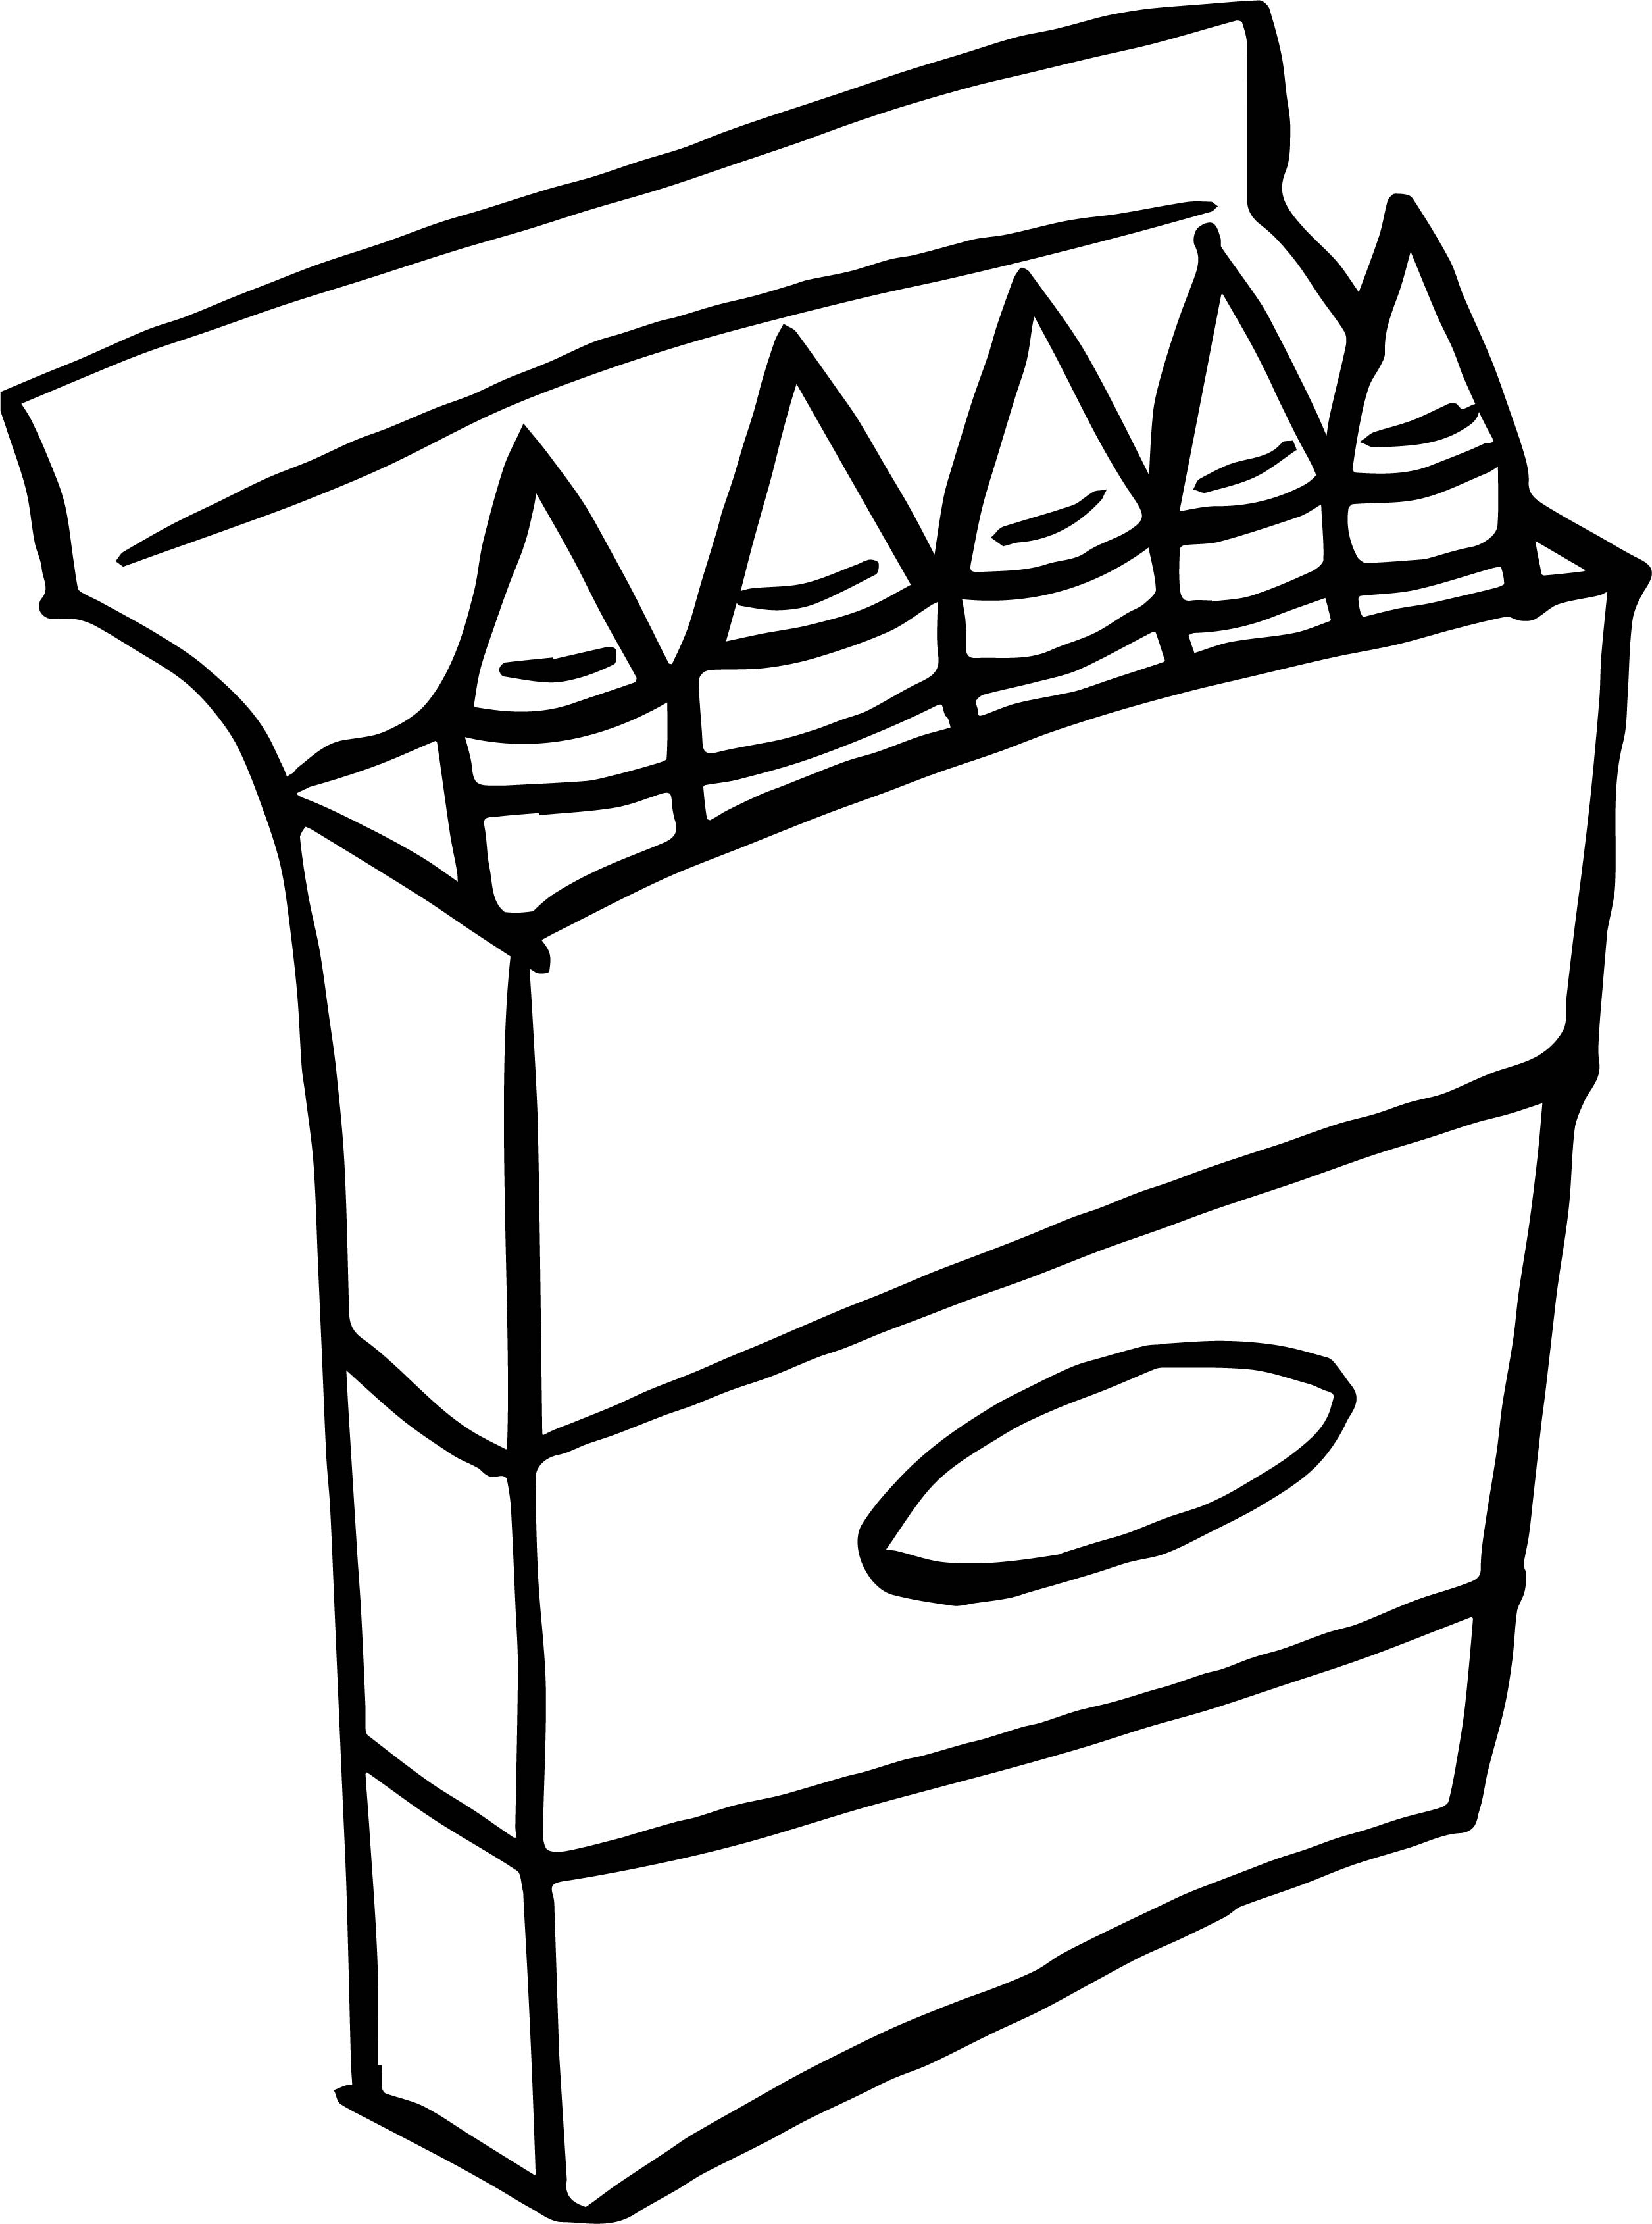 coloring with crayons three crayons to color coloring page coloring crayons with